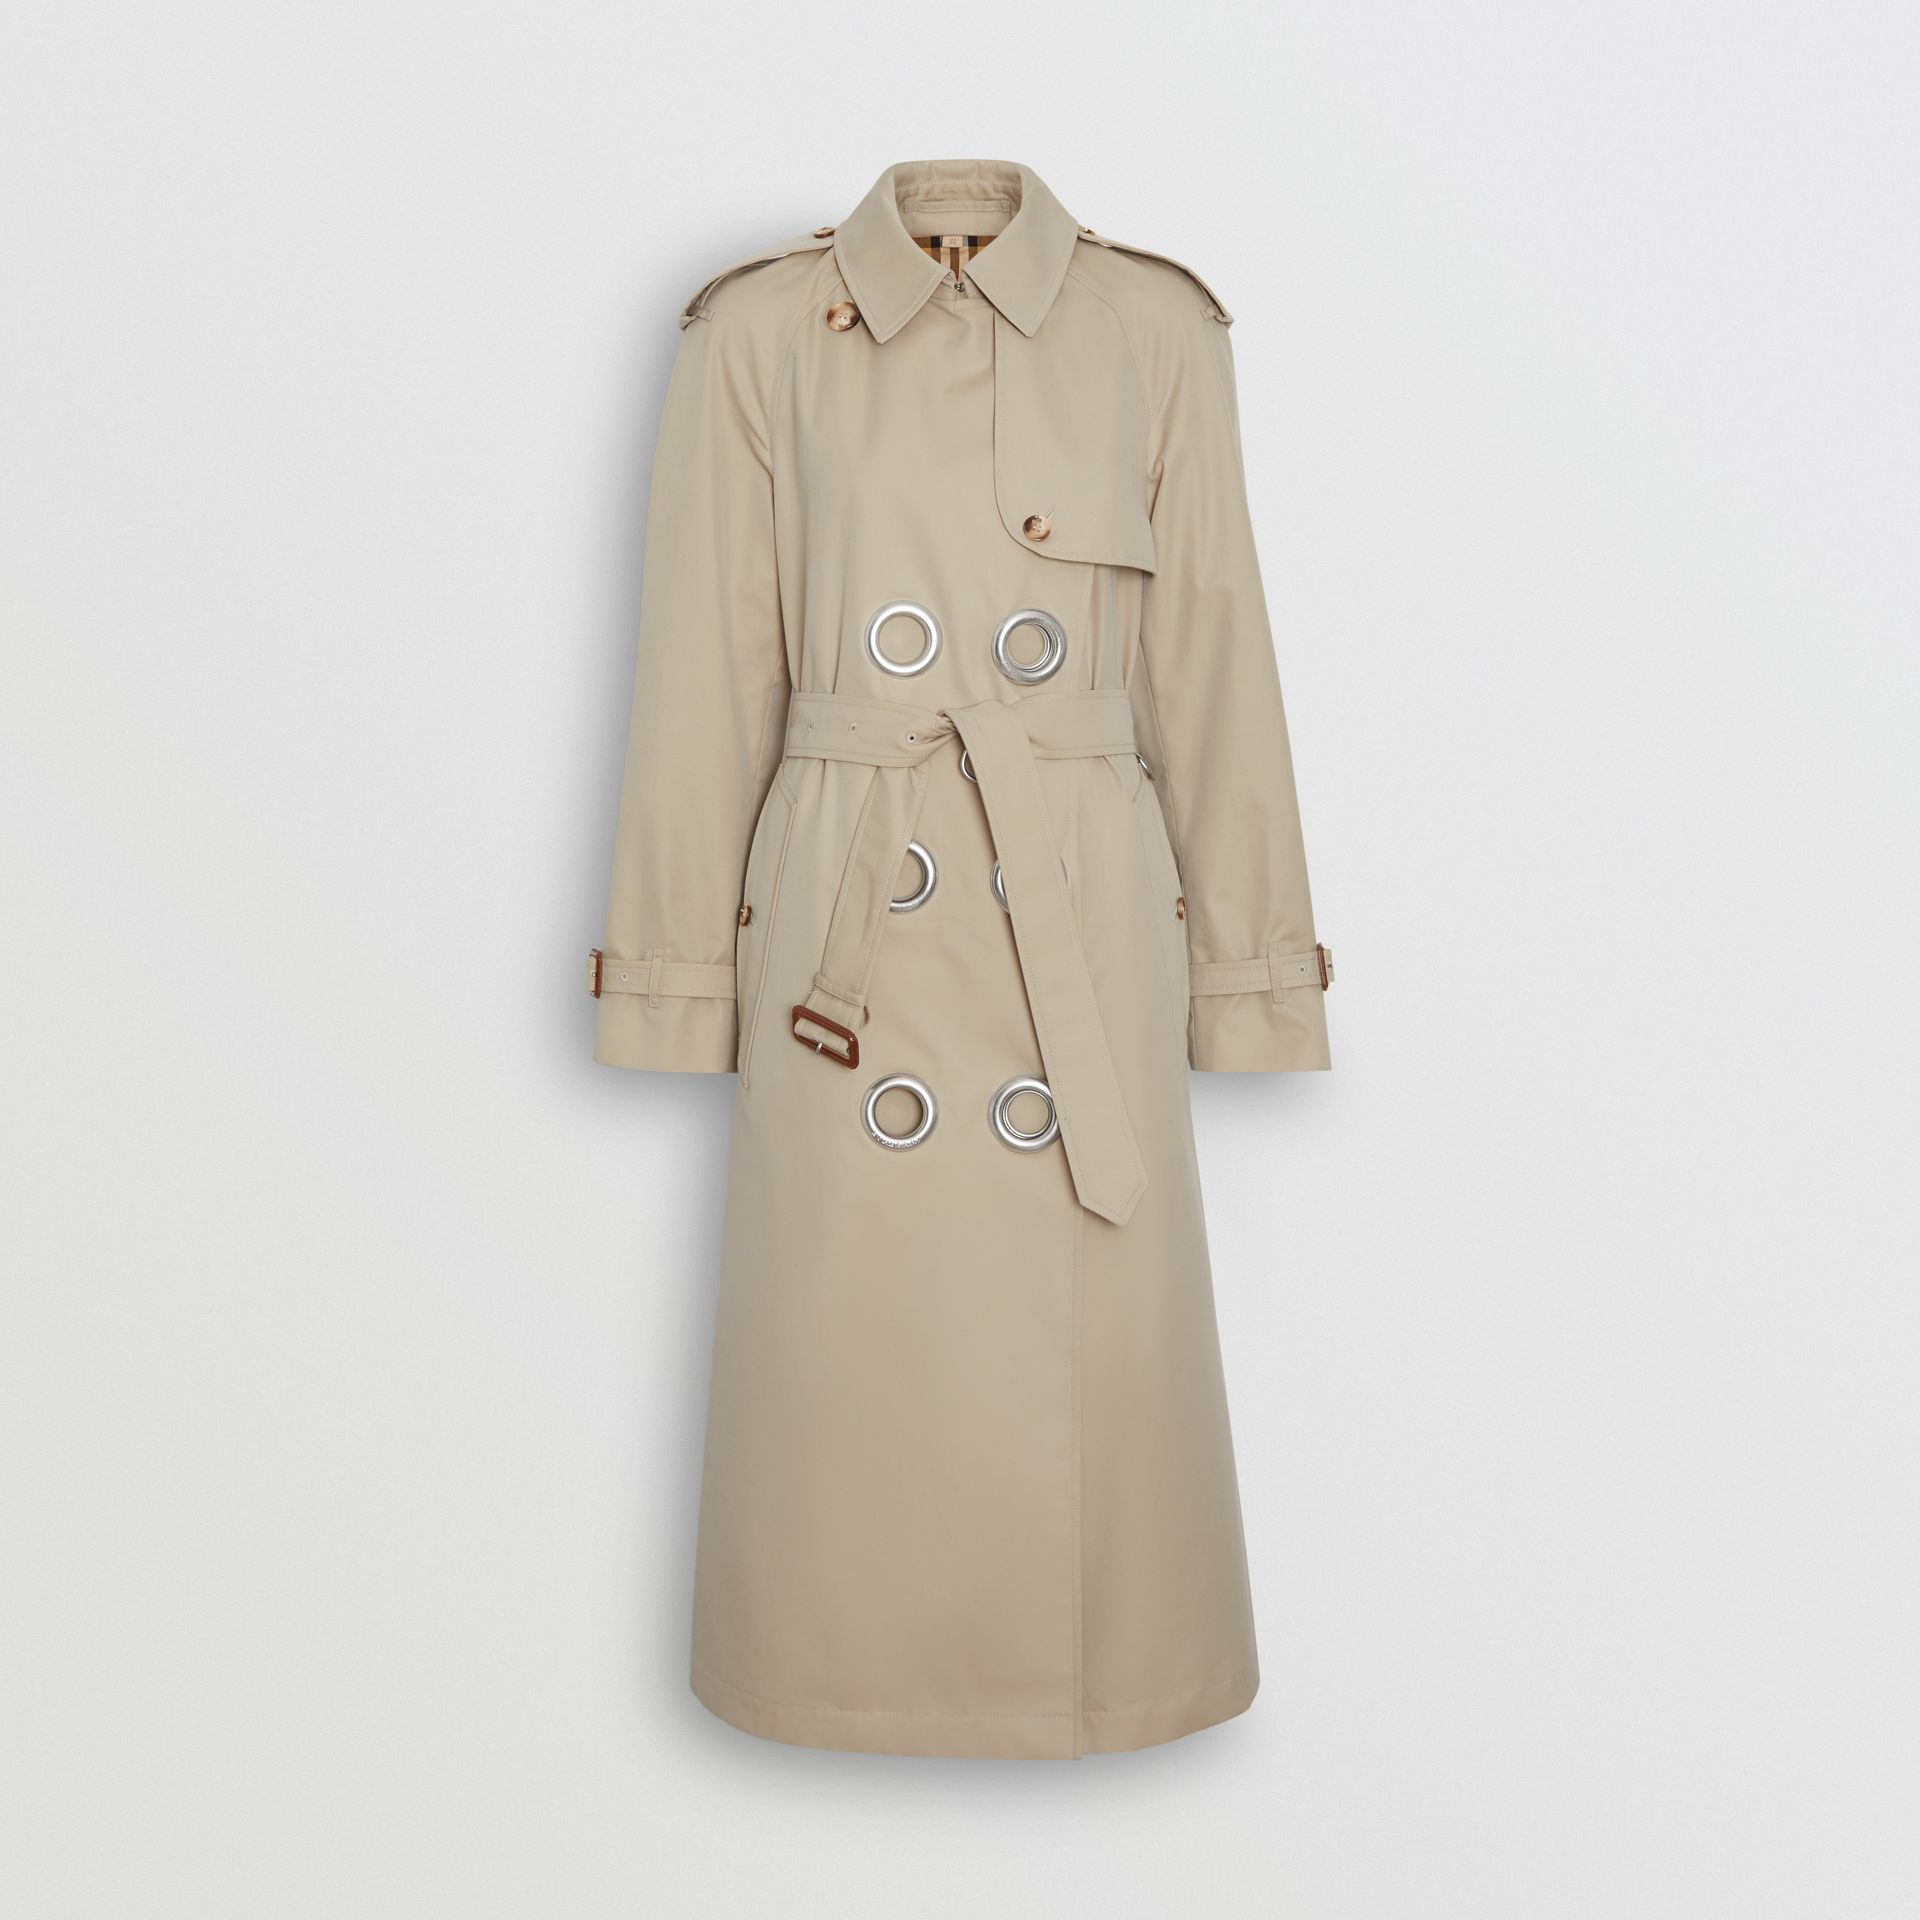 Grommet Detail Cotton Gabardine Trench Coat in Stone - Women | Burberry United Kingdom - gallery image 3